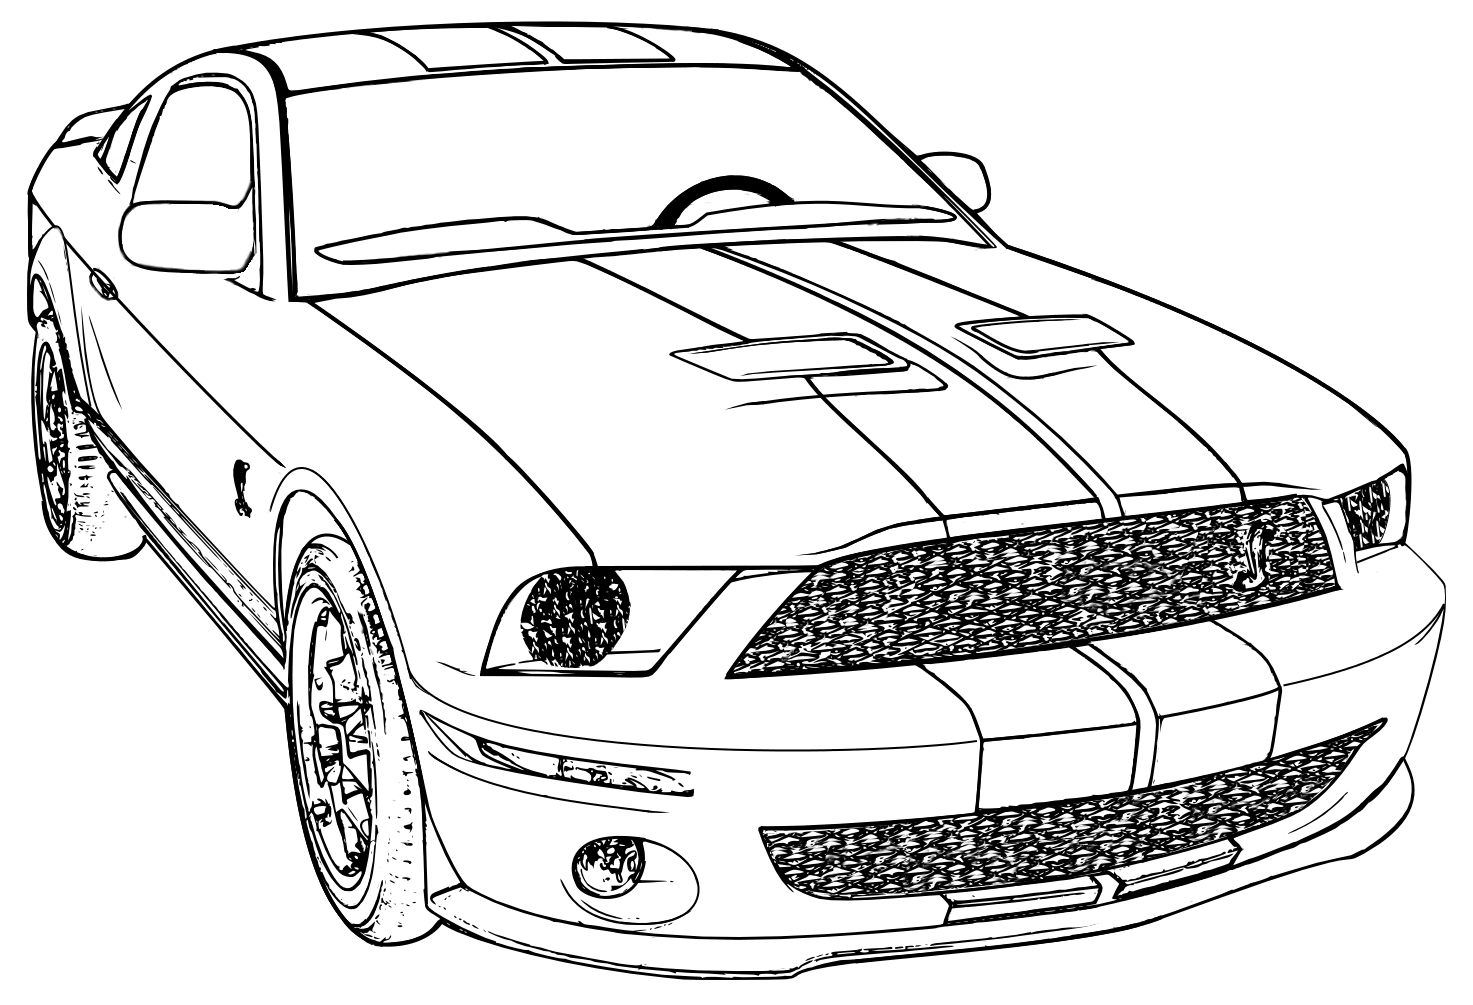 mustang coloring page ford mustang 2015 coloring page free printable coloring page coloring mustang